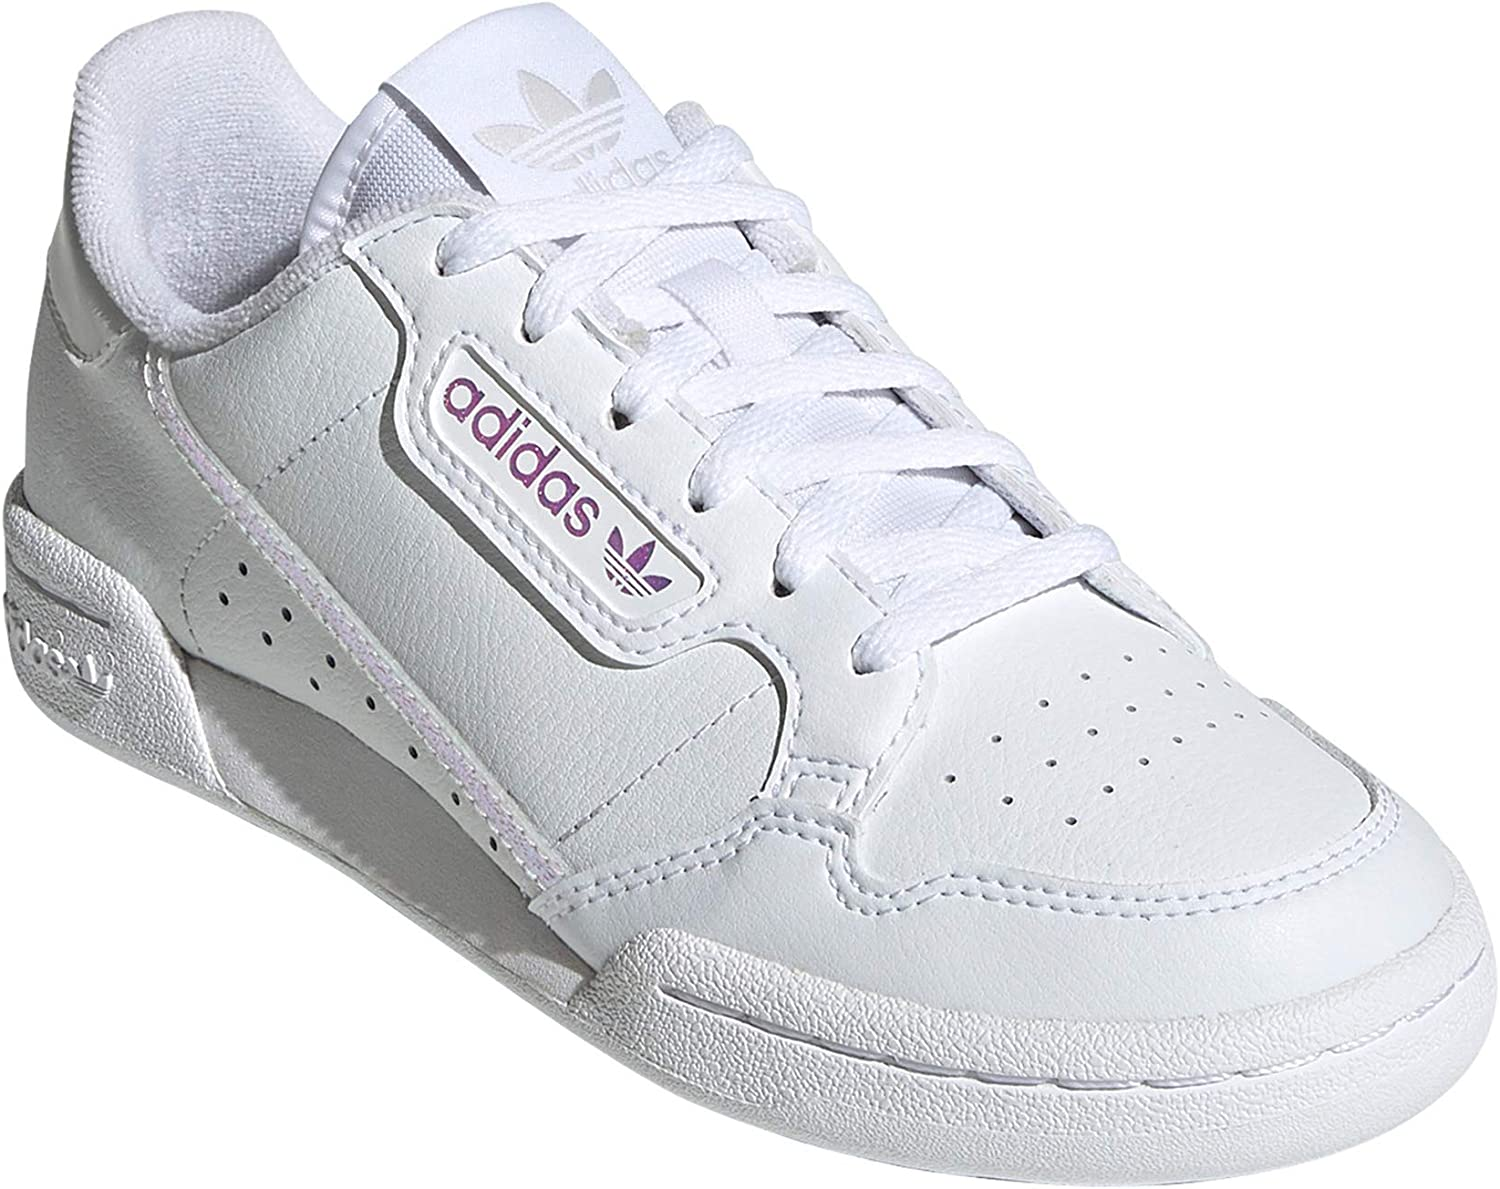 adidas Damen Continental 80 W Fitnessschuhe, Weiß. Tennis Originals Authentic Blanc Pur Détails Irisés Rose